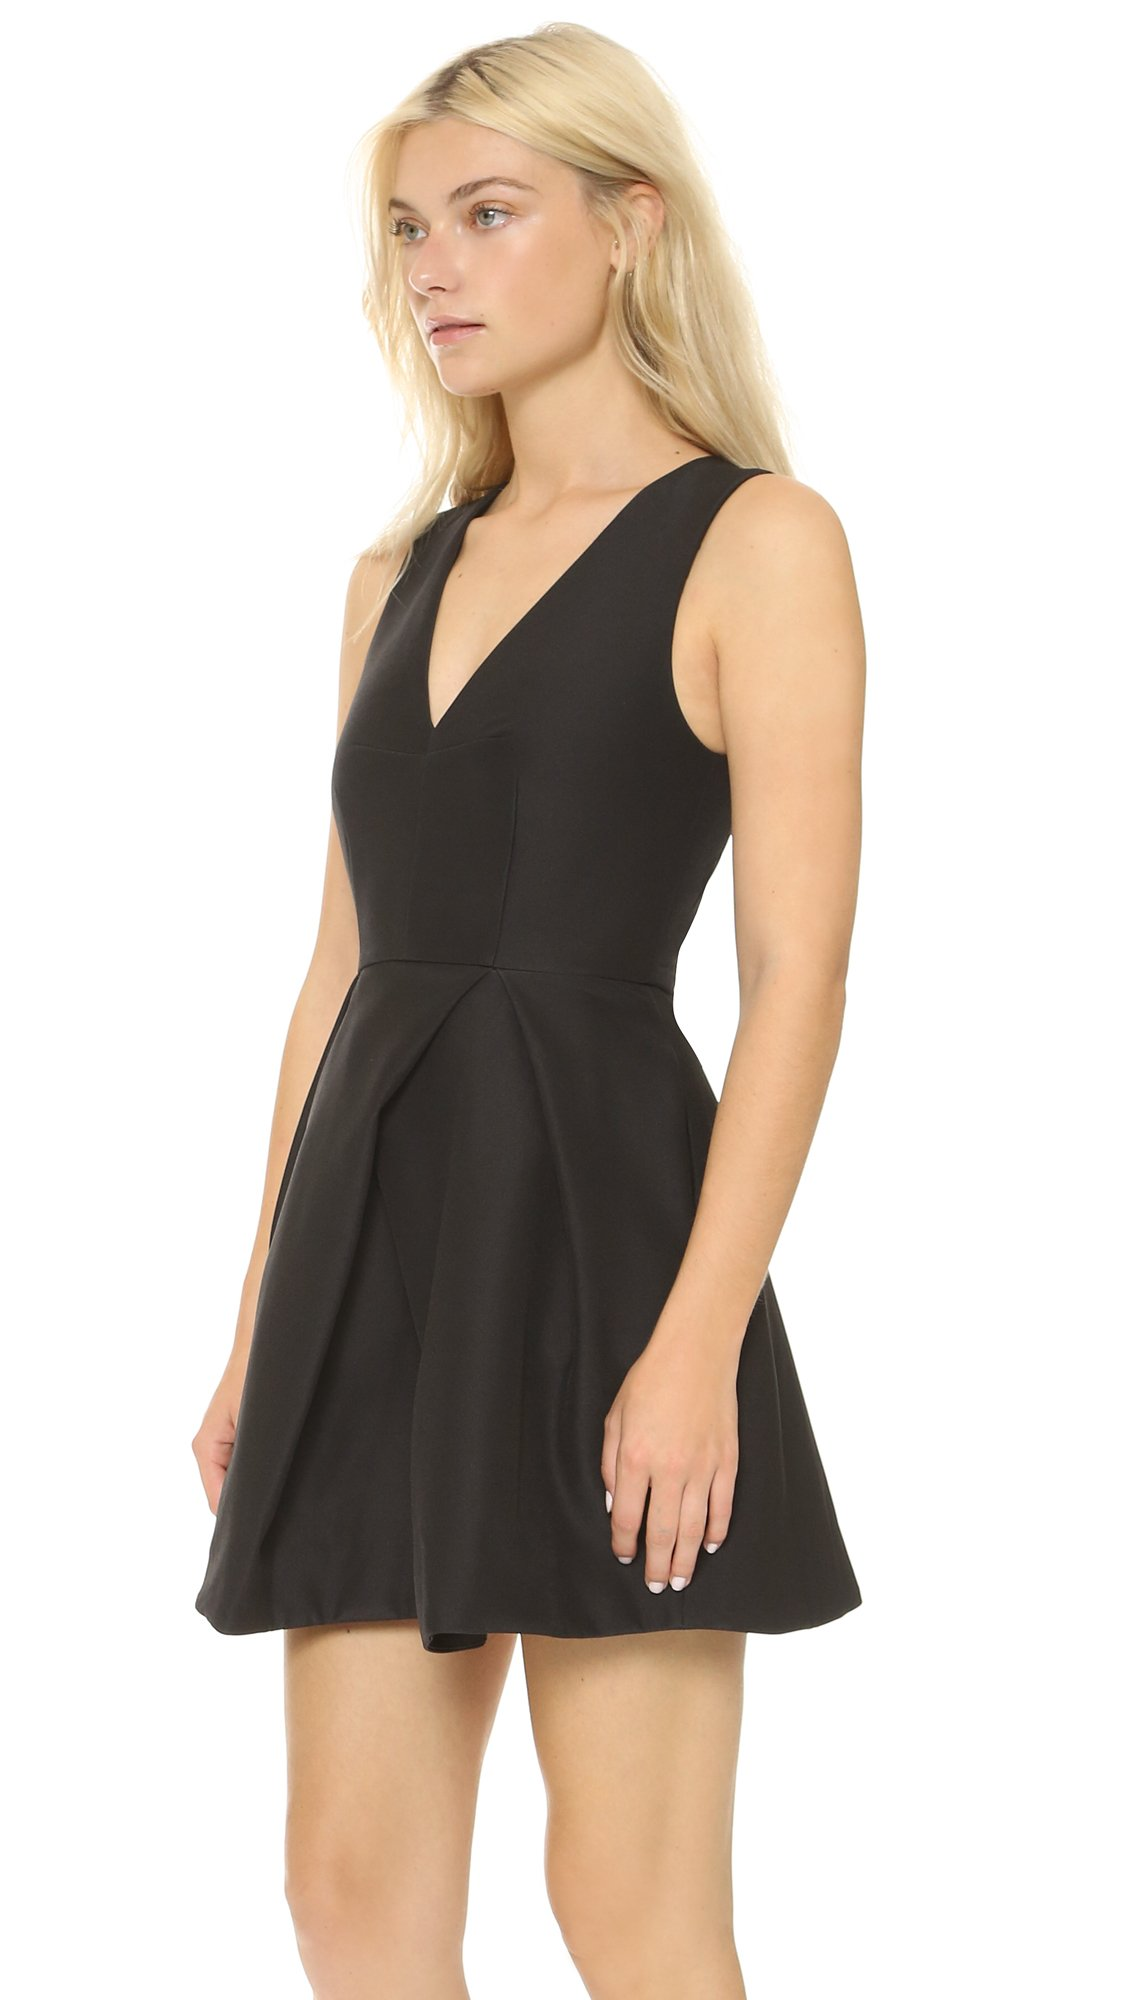 Gone Girl Dress